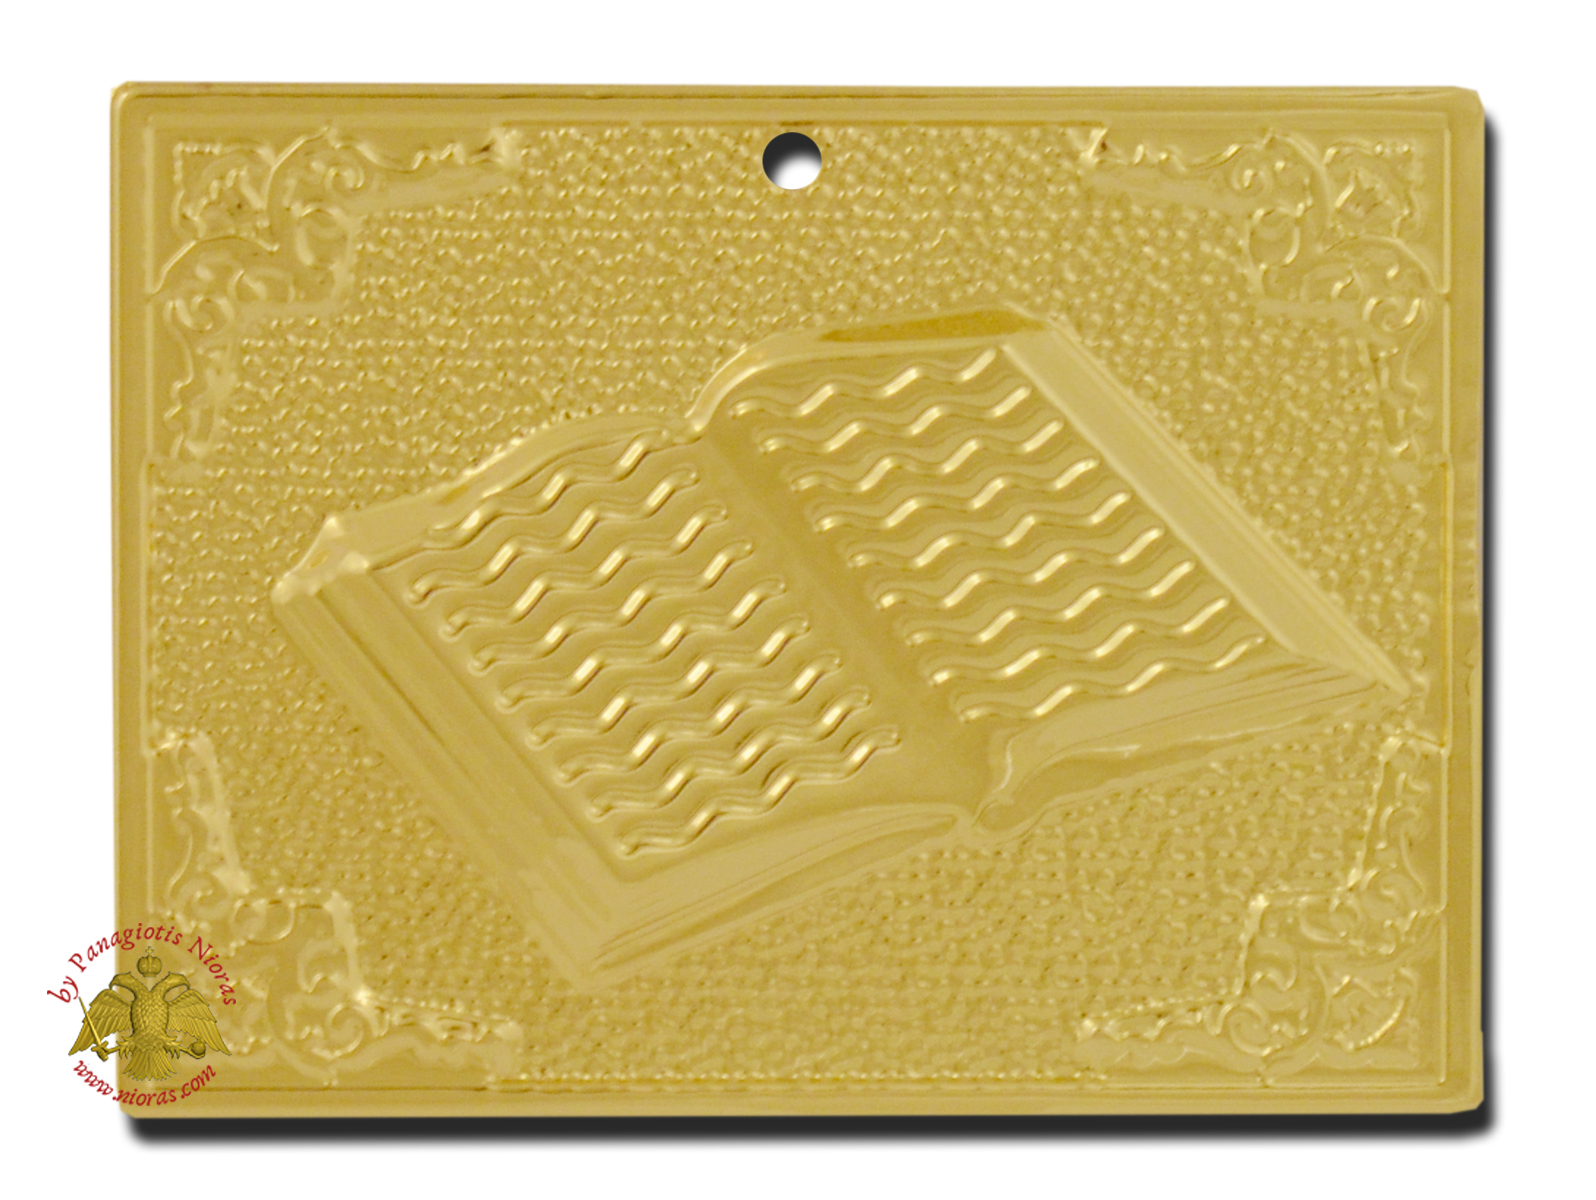 Orthodox Metal Tama Book ExVoto  Gold Plated Milagros